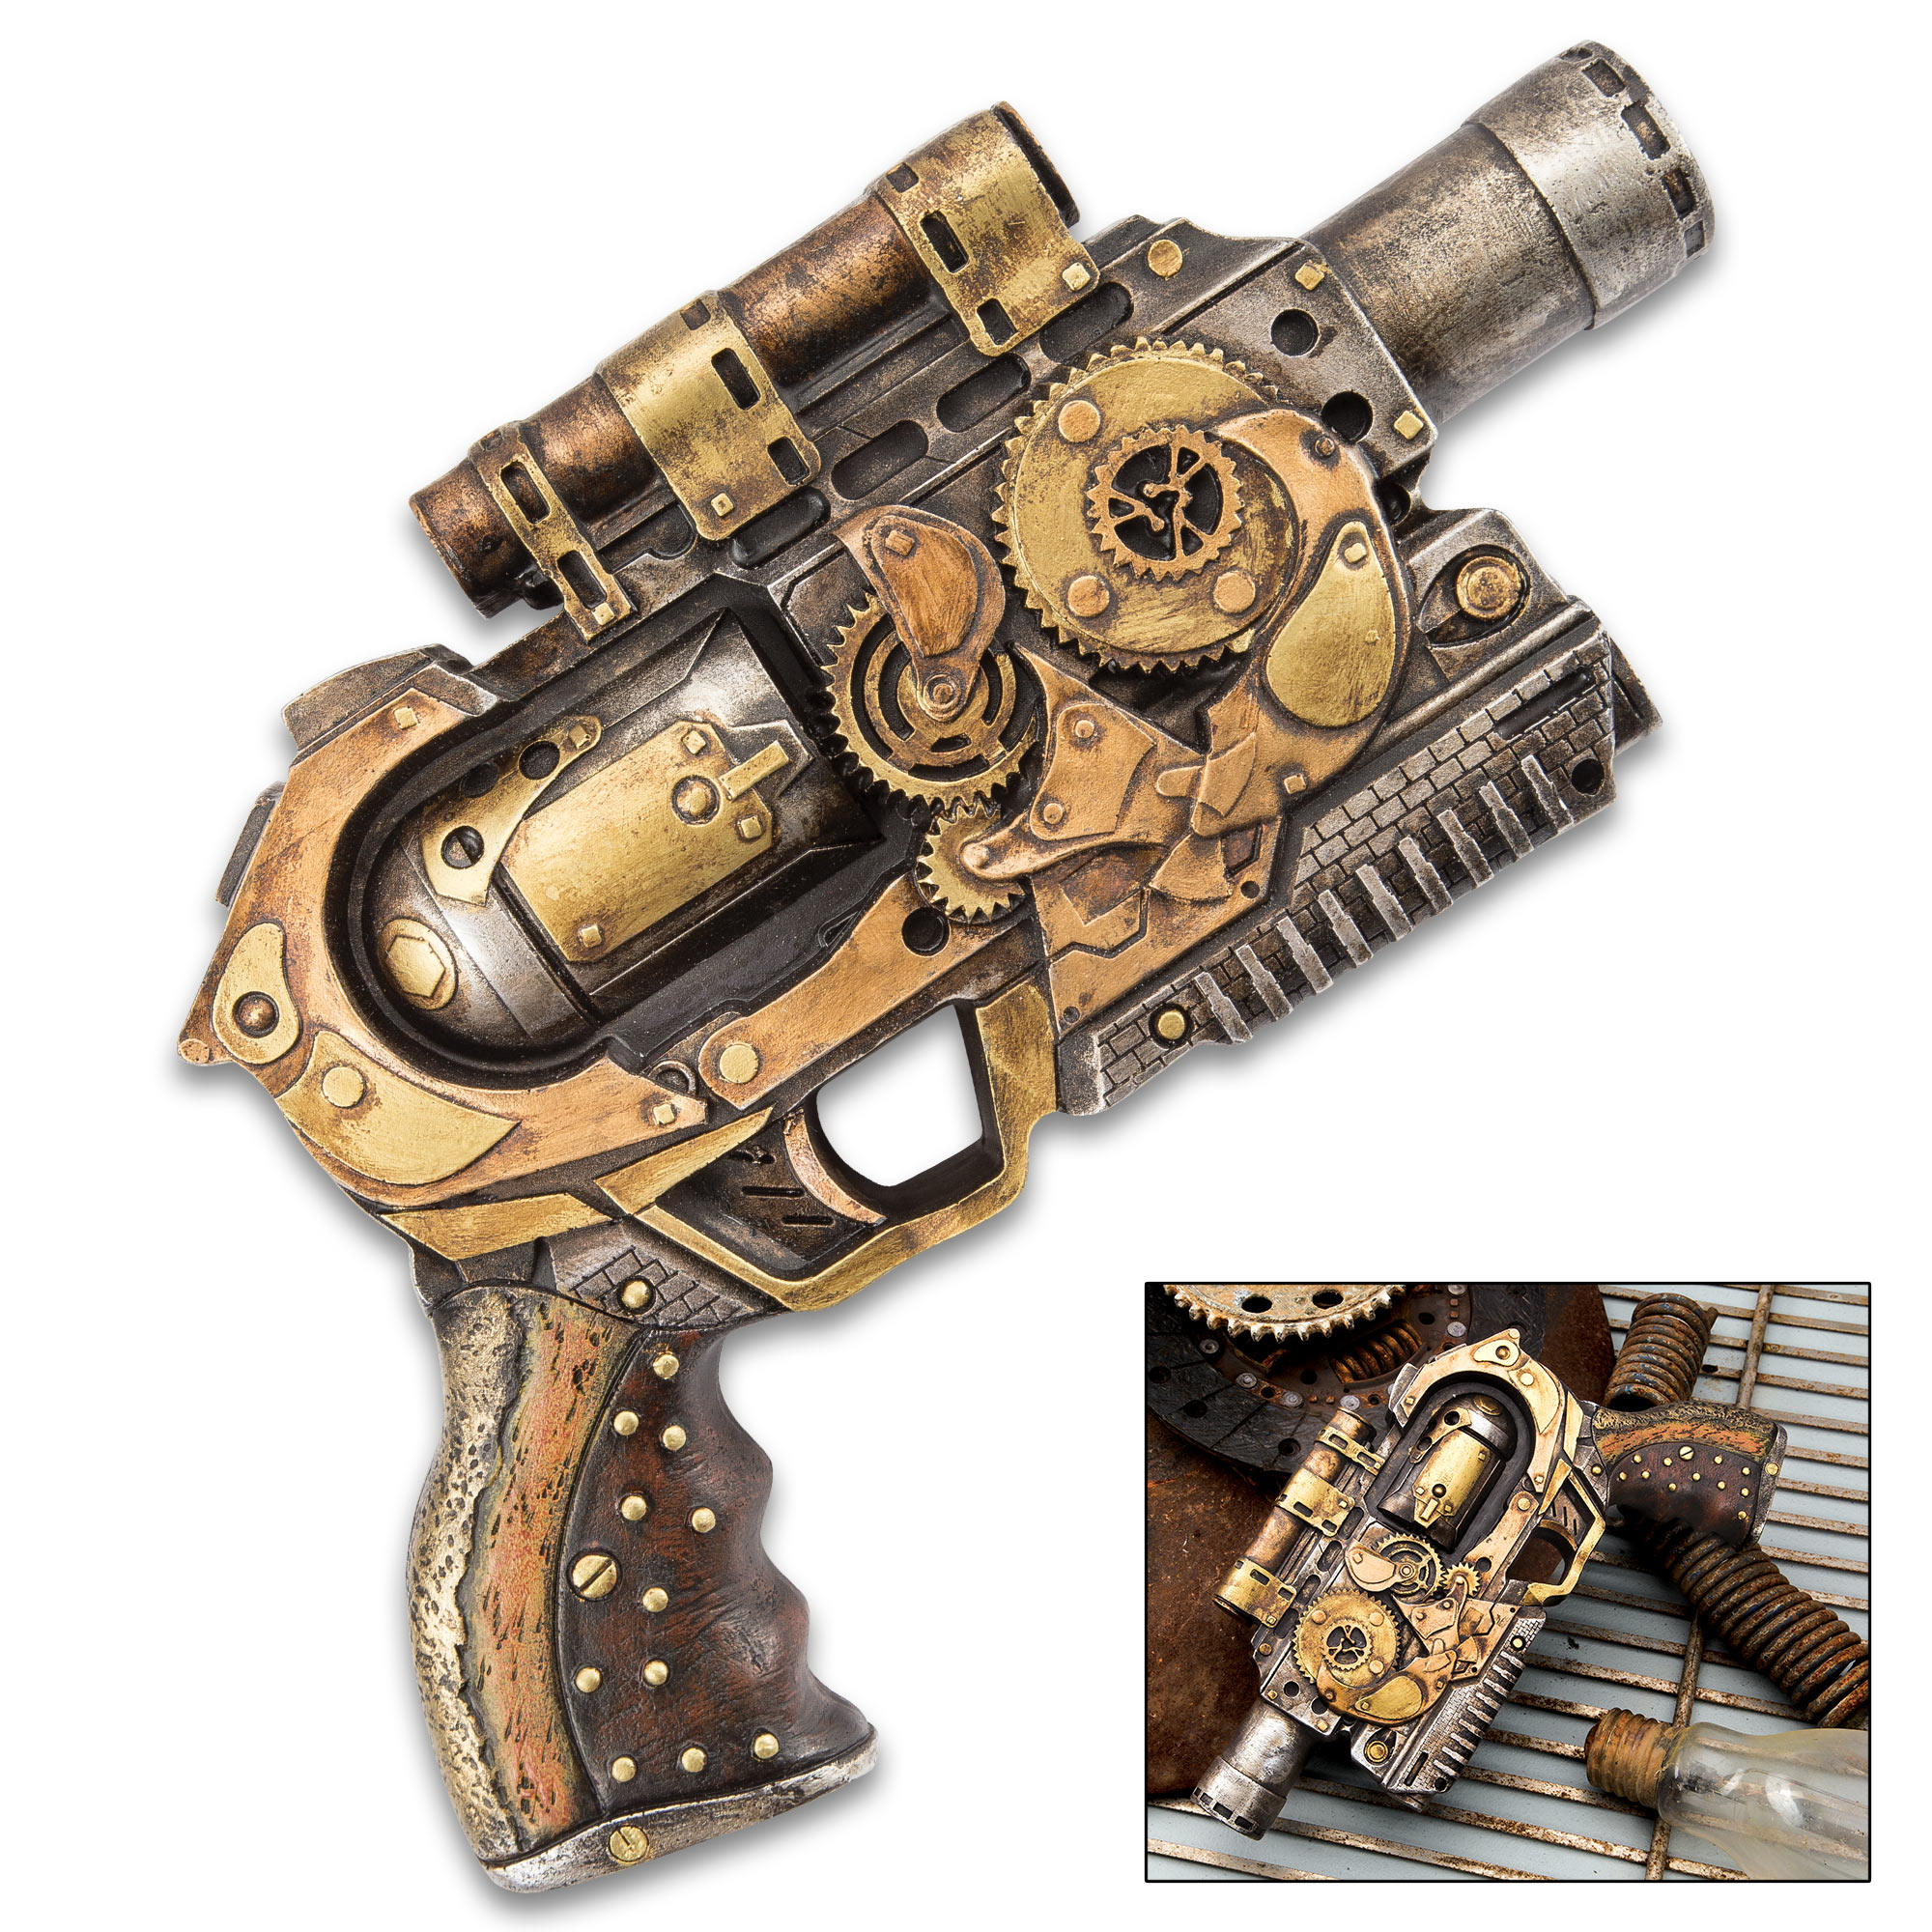 Quantum Cannon Steampunk Display Revolver Polyresin Sculpture Home Office Decor Mantle